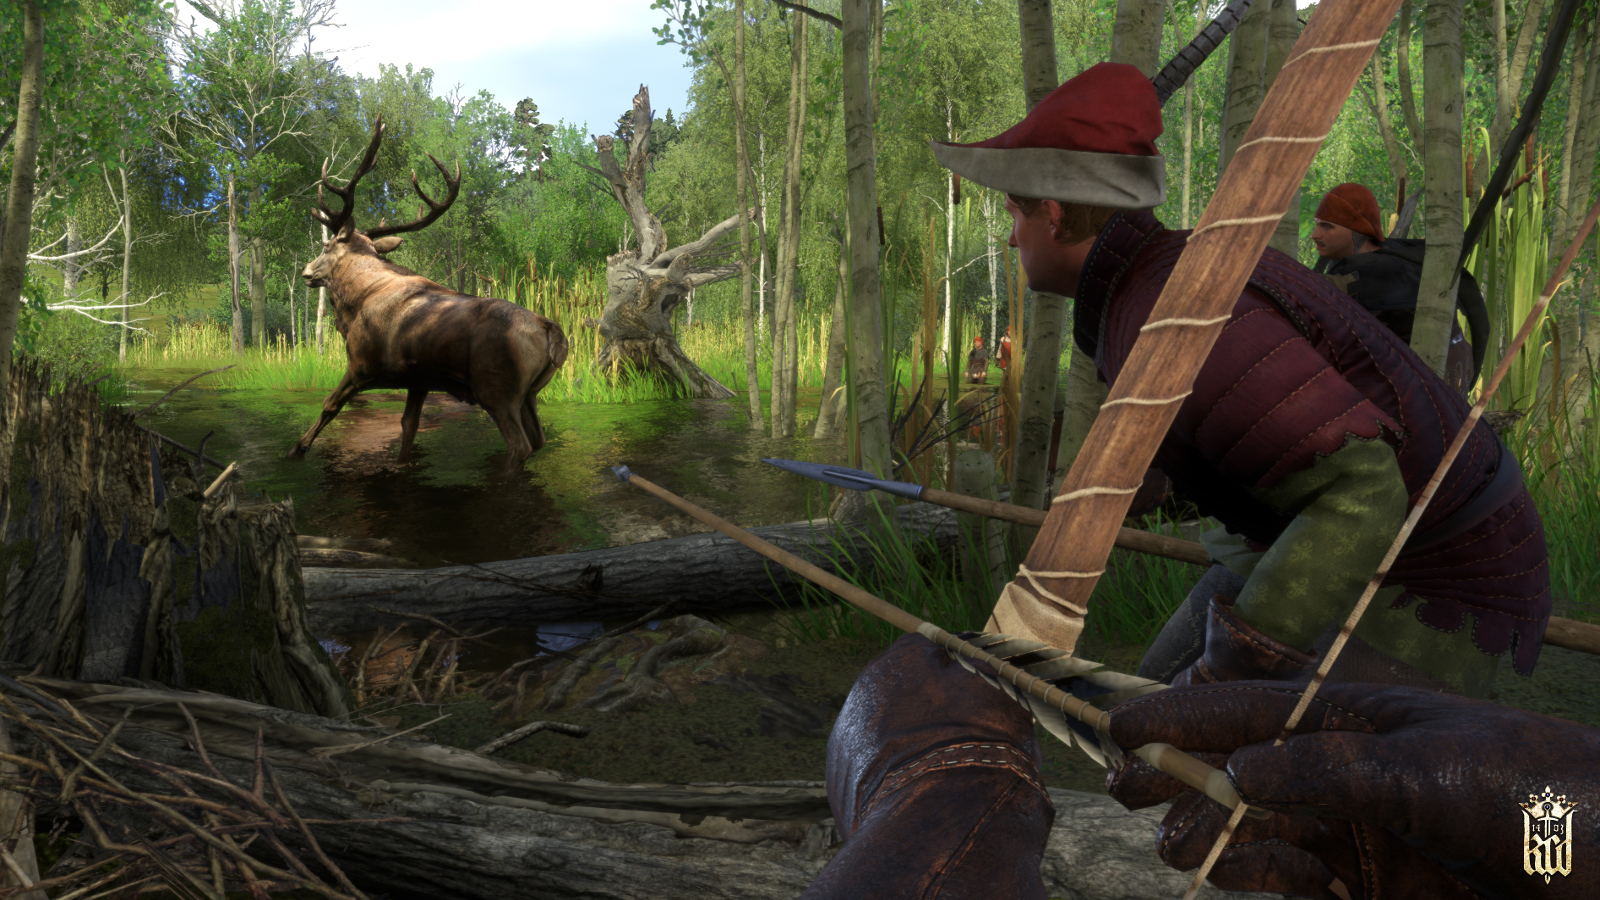 Kingdom Come Deliverance Banditenlager Karte.Geld Verdienen In Kingdom Come Deliverance So Wirst Du Reich